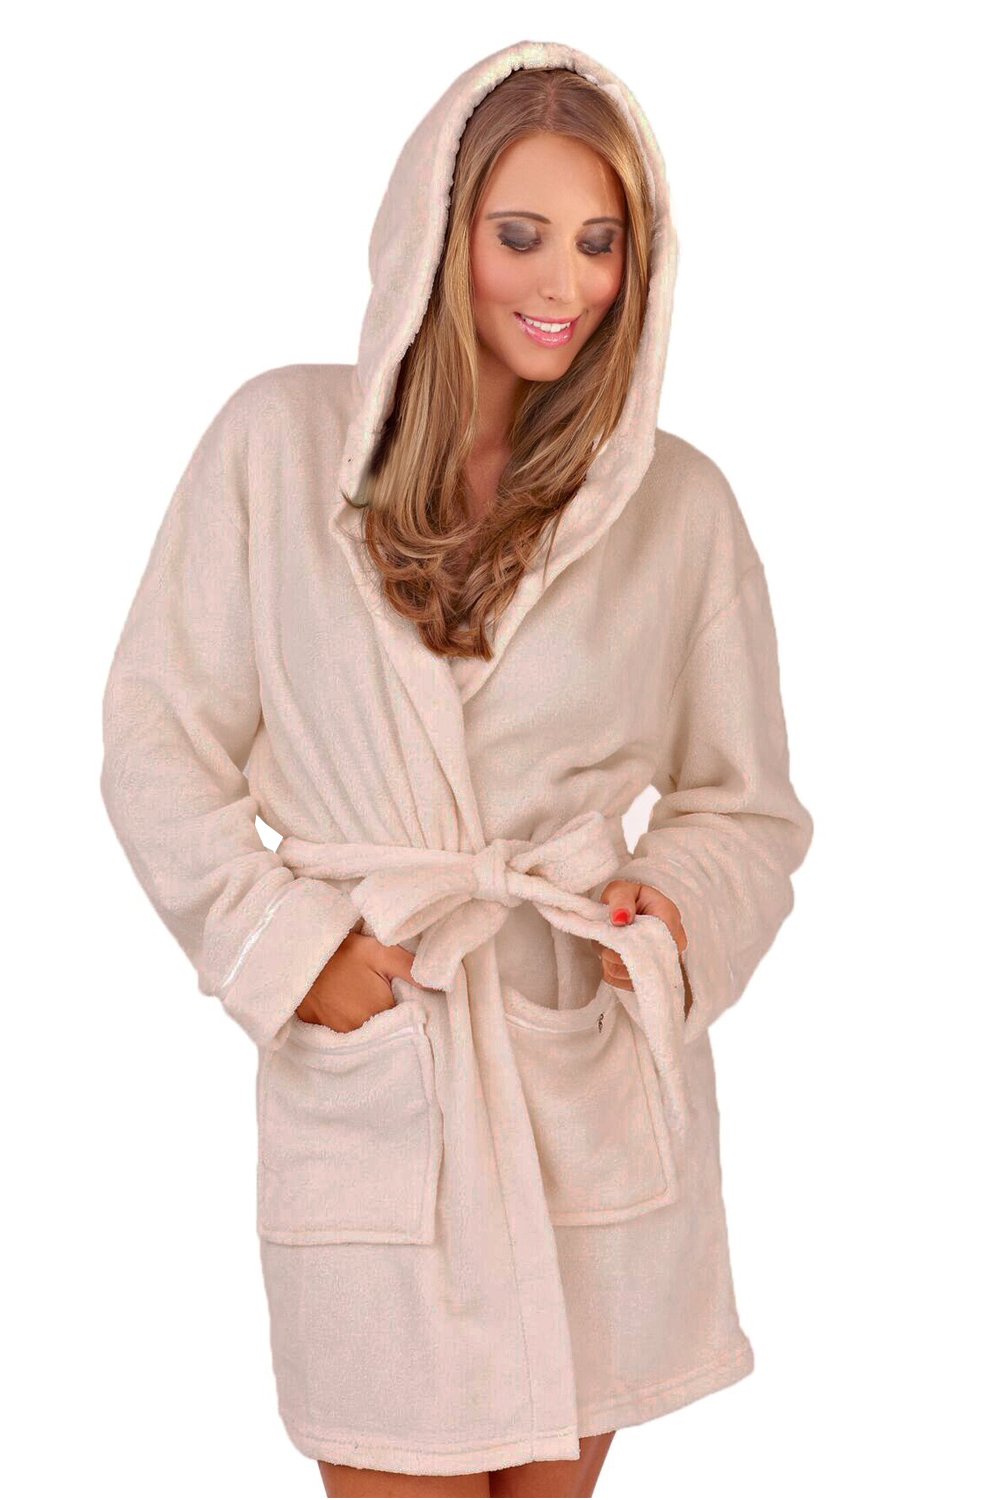 womens soft hooded short bathrobe dressing gown housecoat. Black Bedroom Furniture Sets. Home Design Ideas